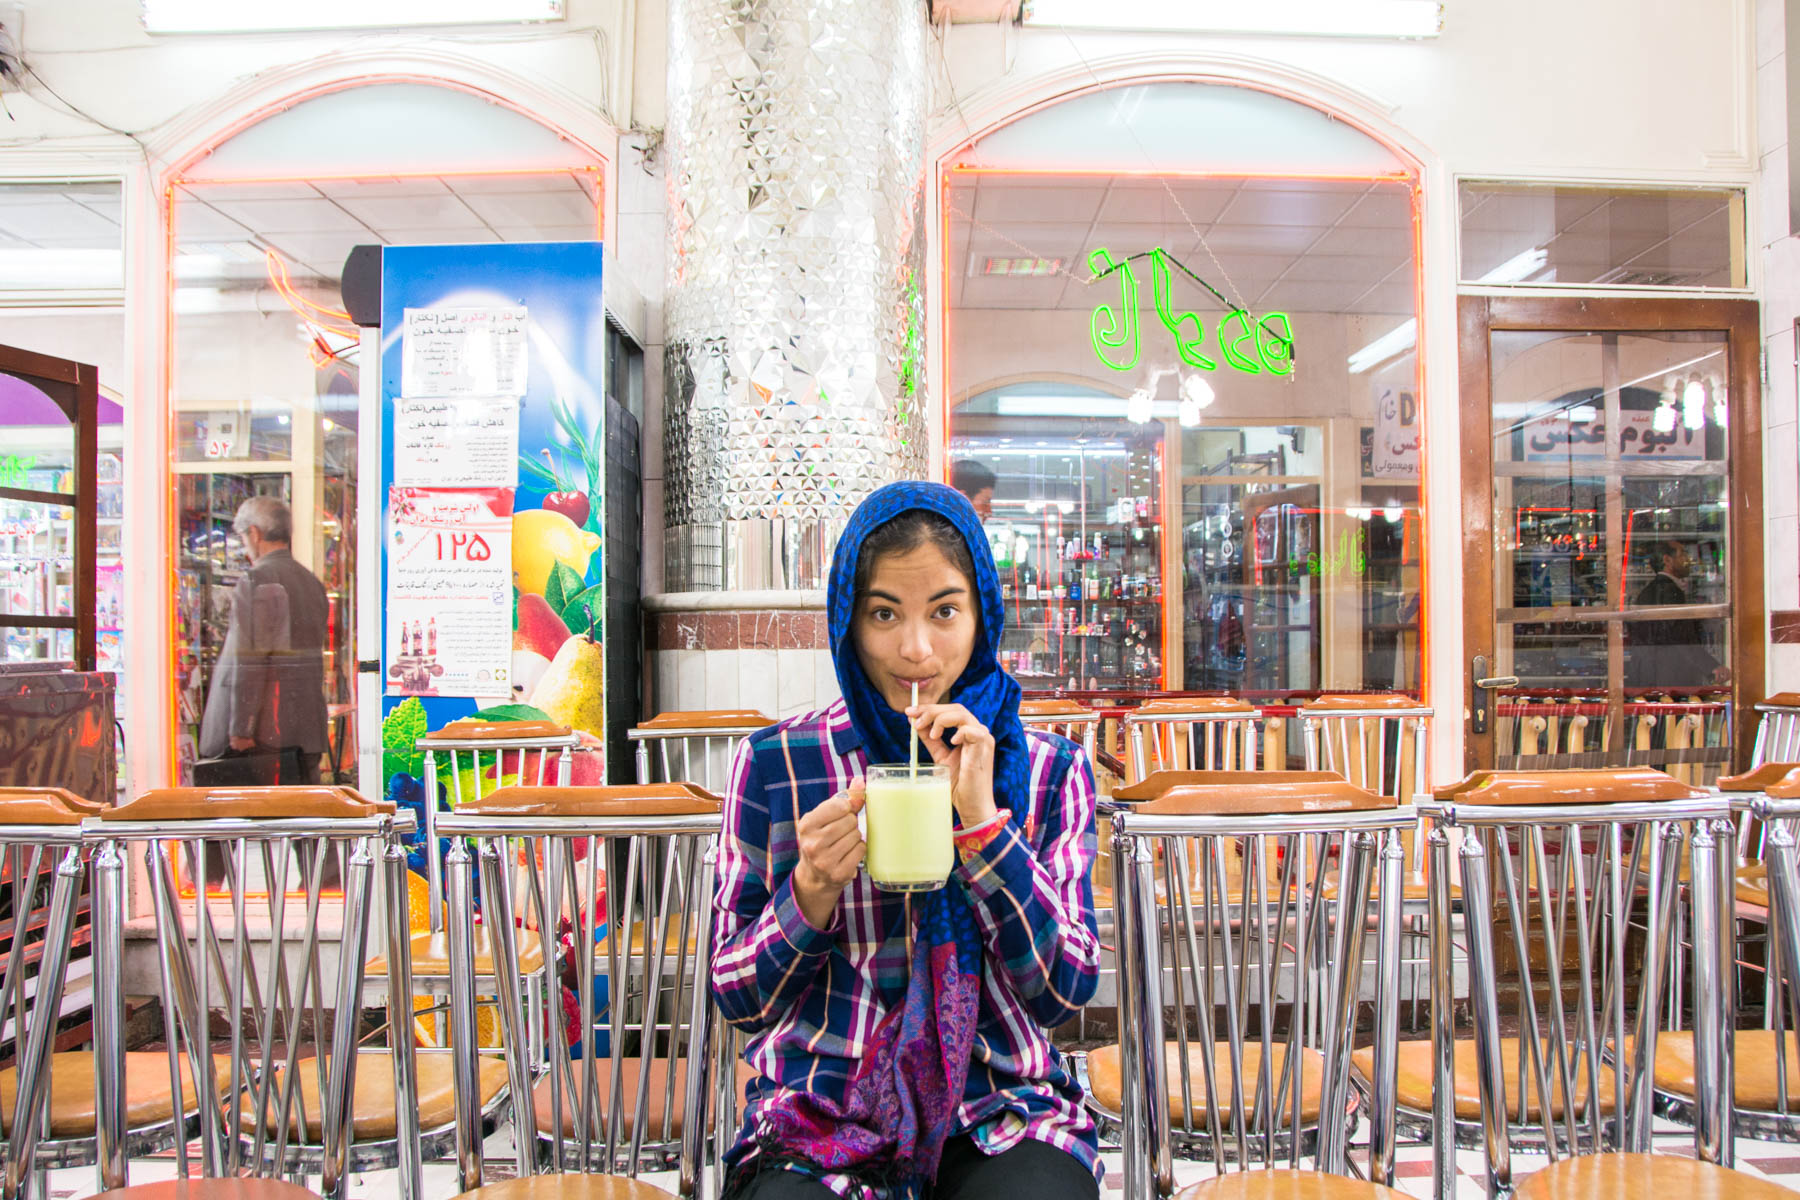 Drinking a melon smoothie in Tabriz